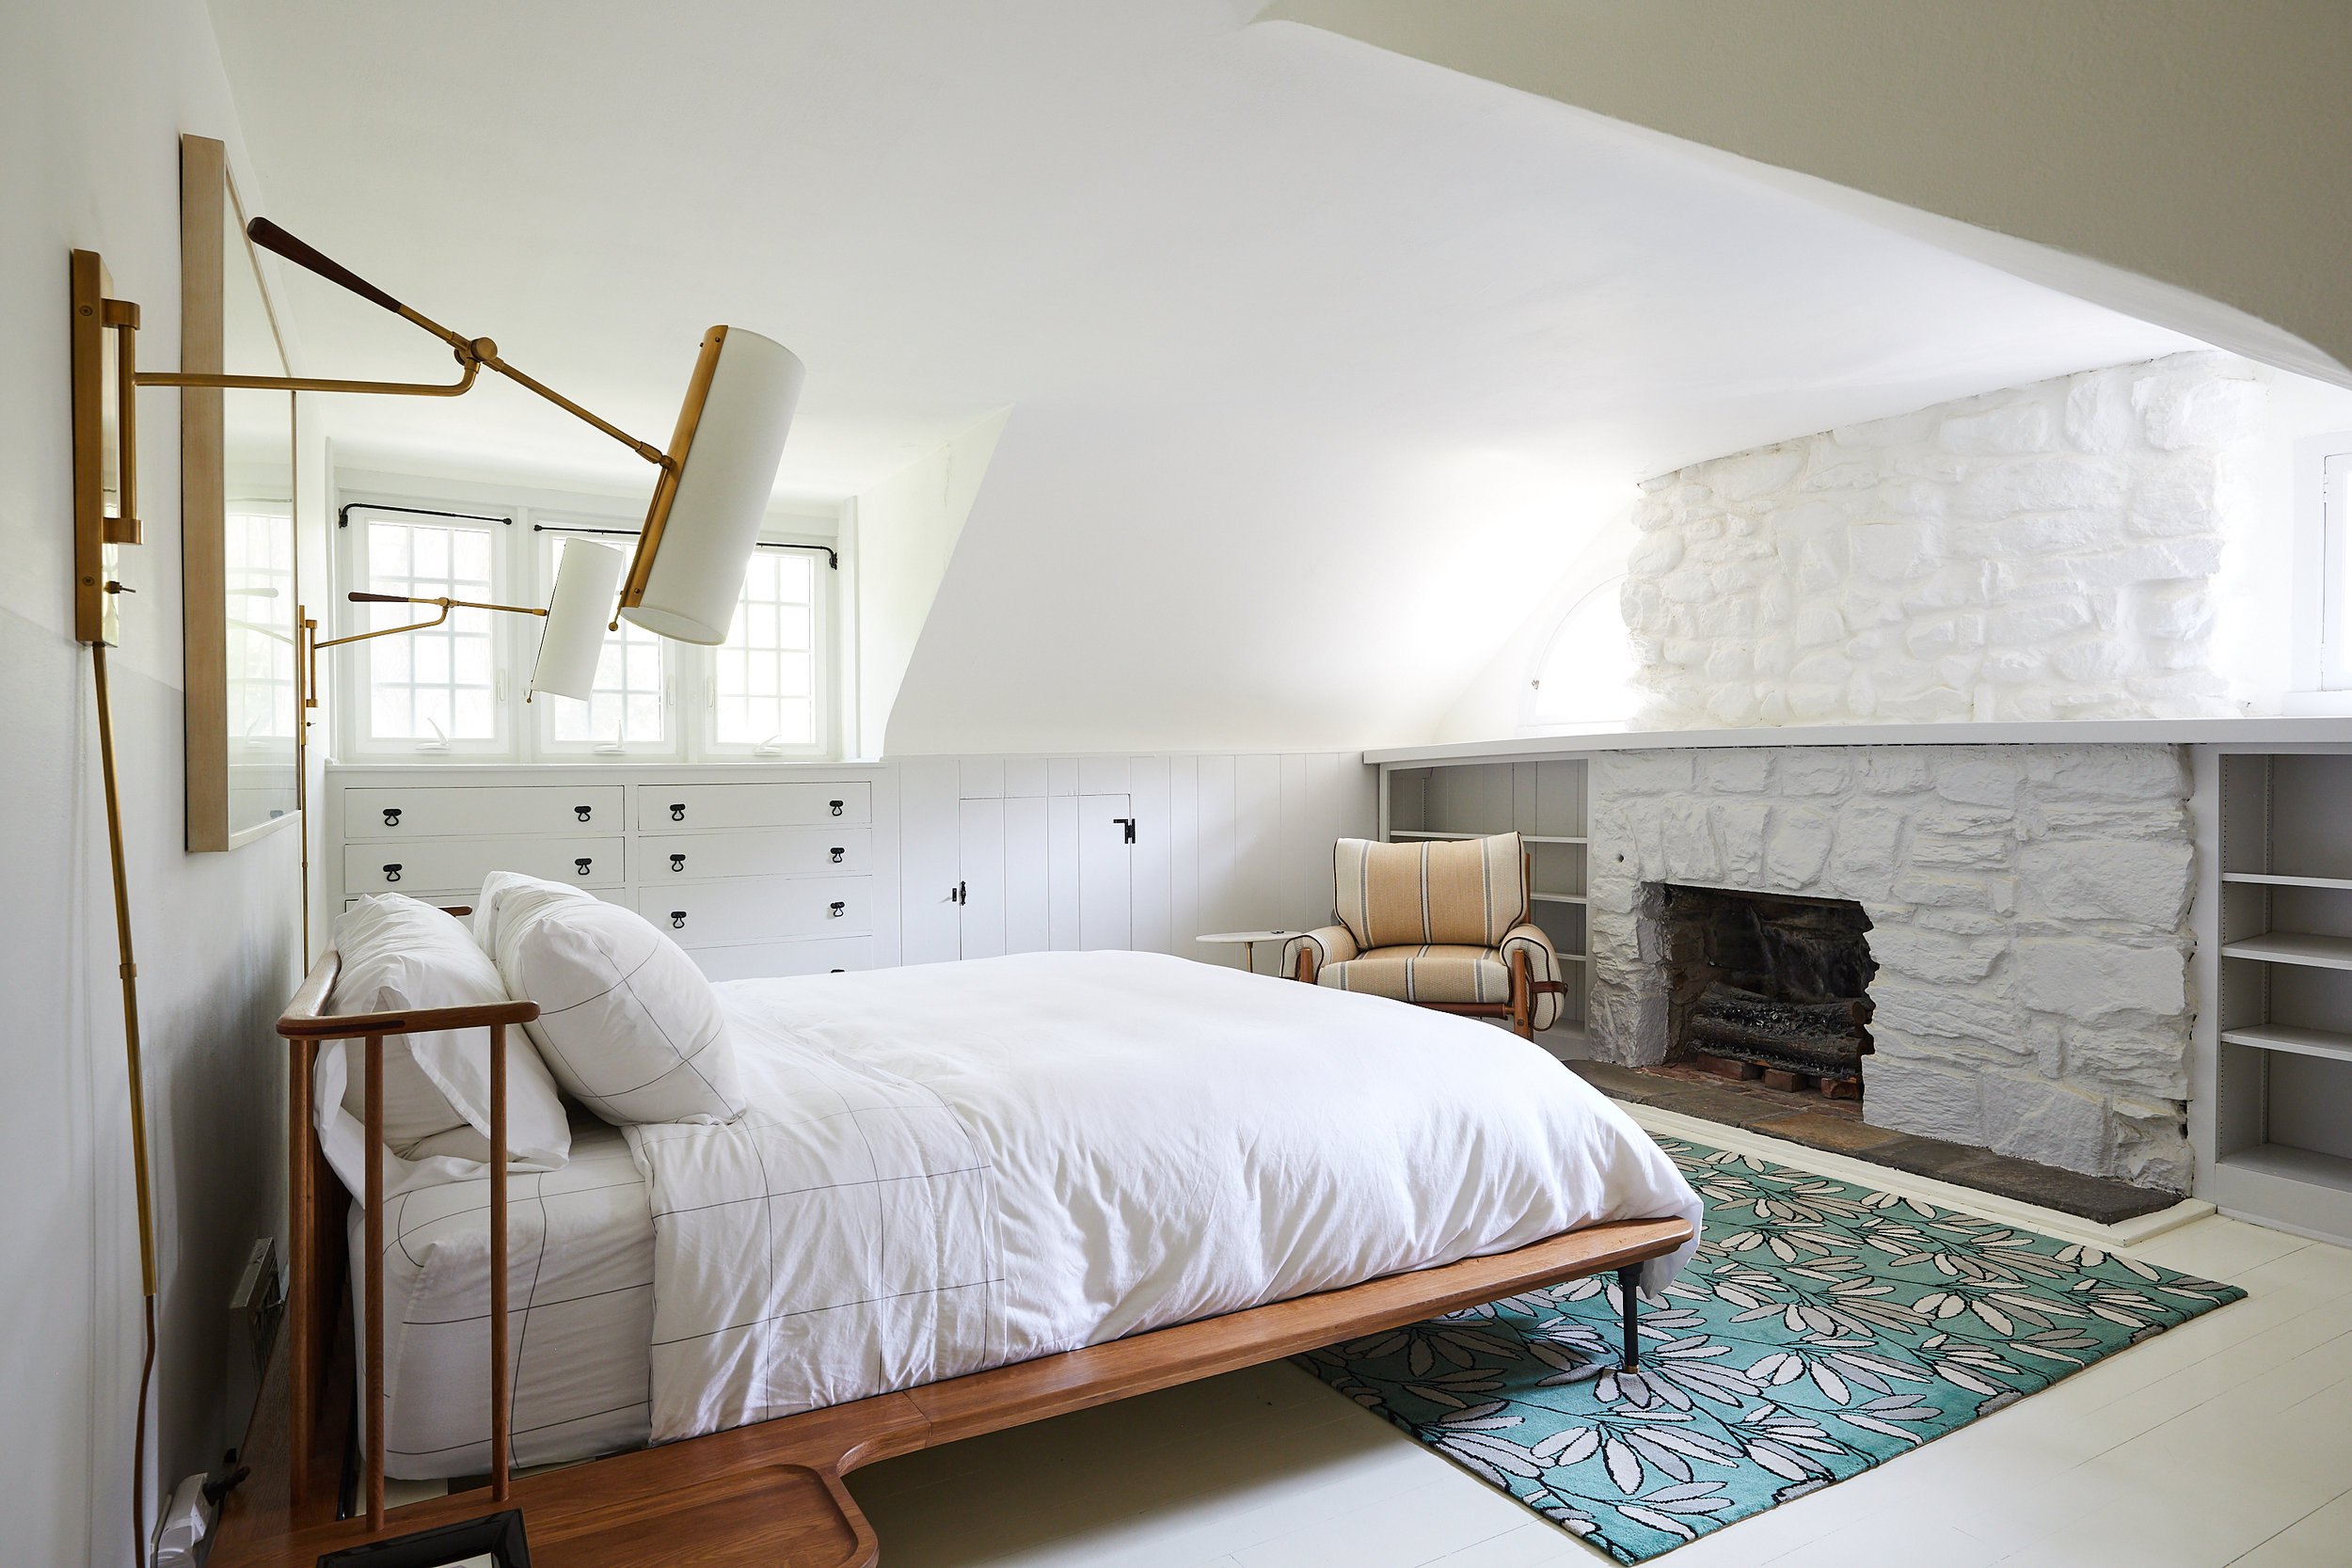 Lords_Hwy_Guest_House_020.jpg